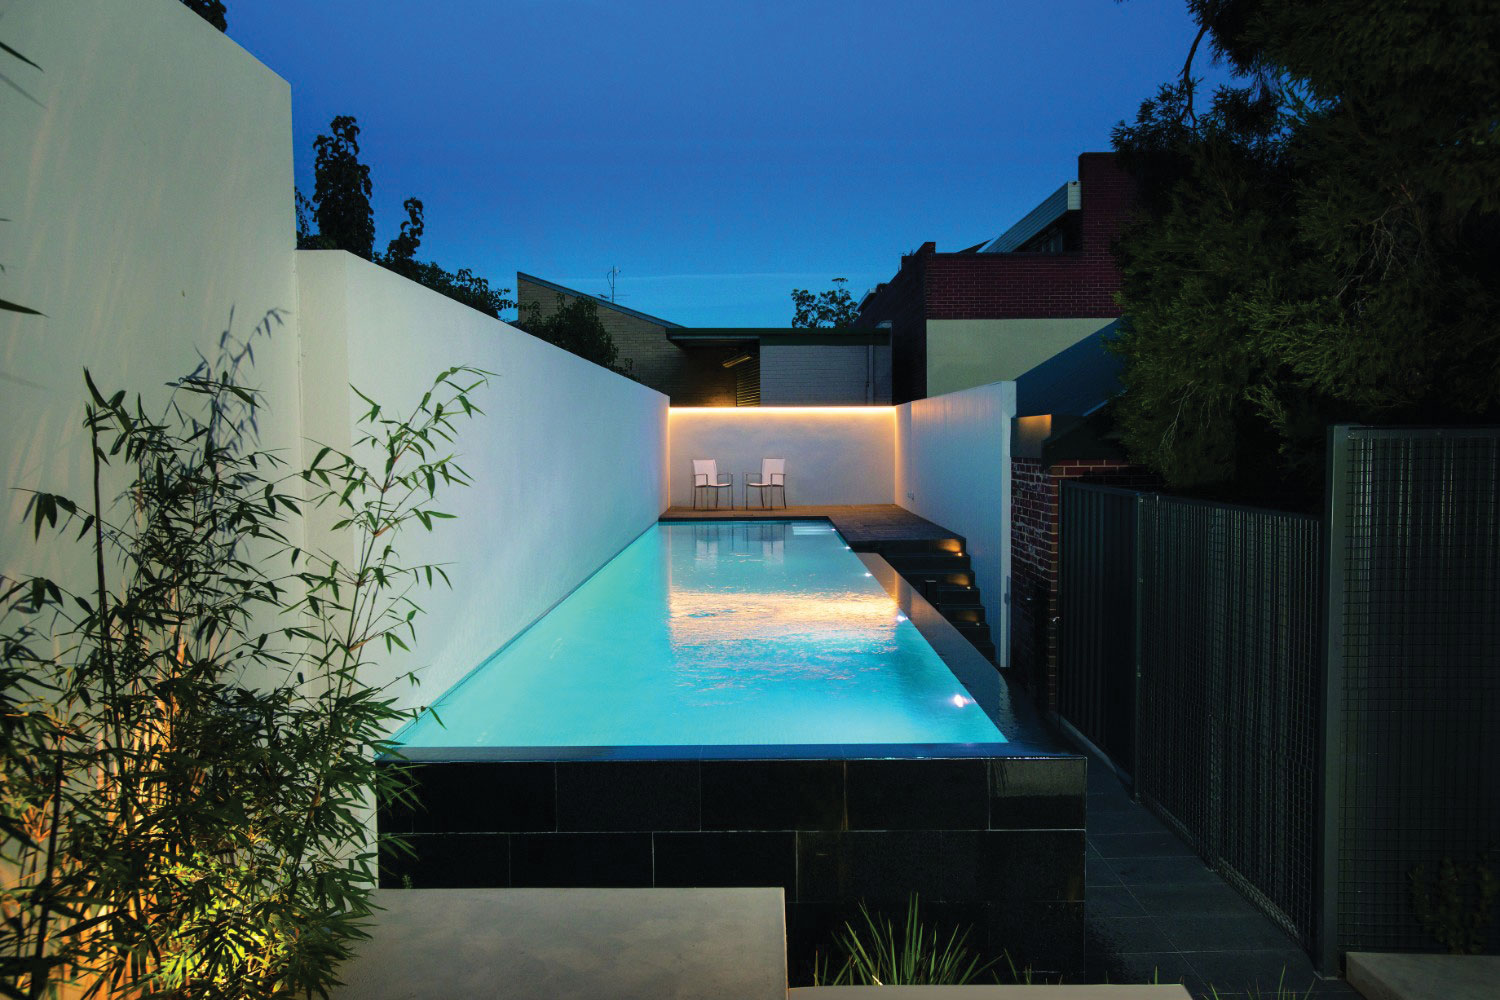 6 Luxurious Lap Pool Designs - Completehome